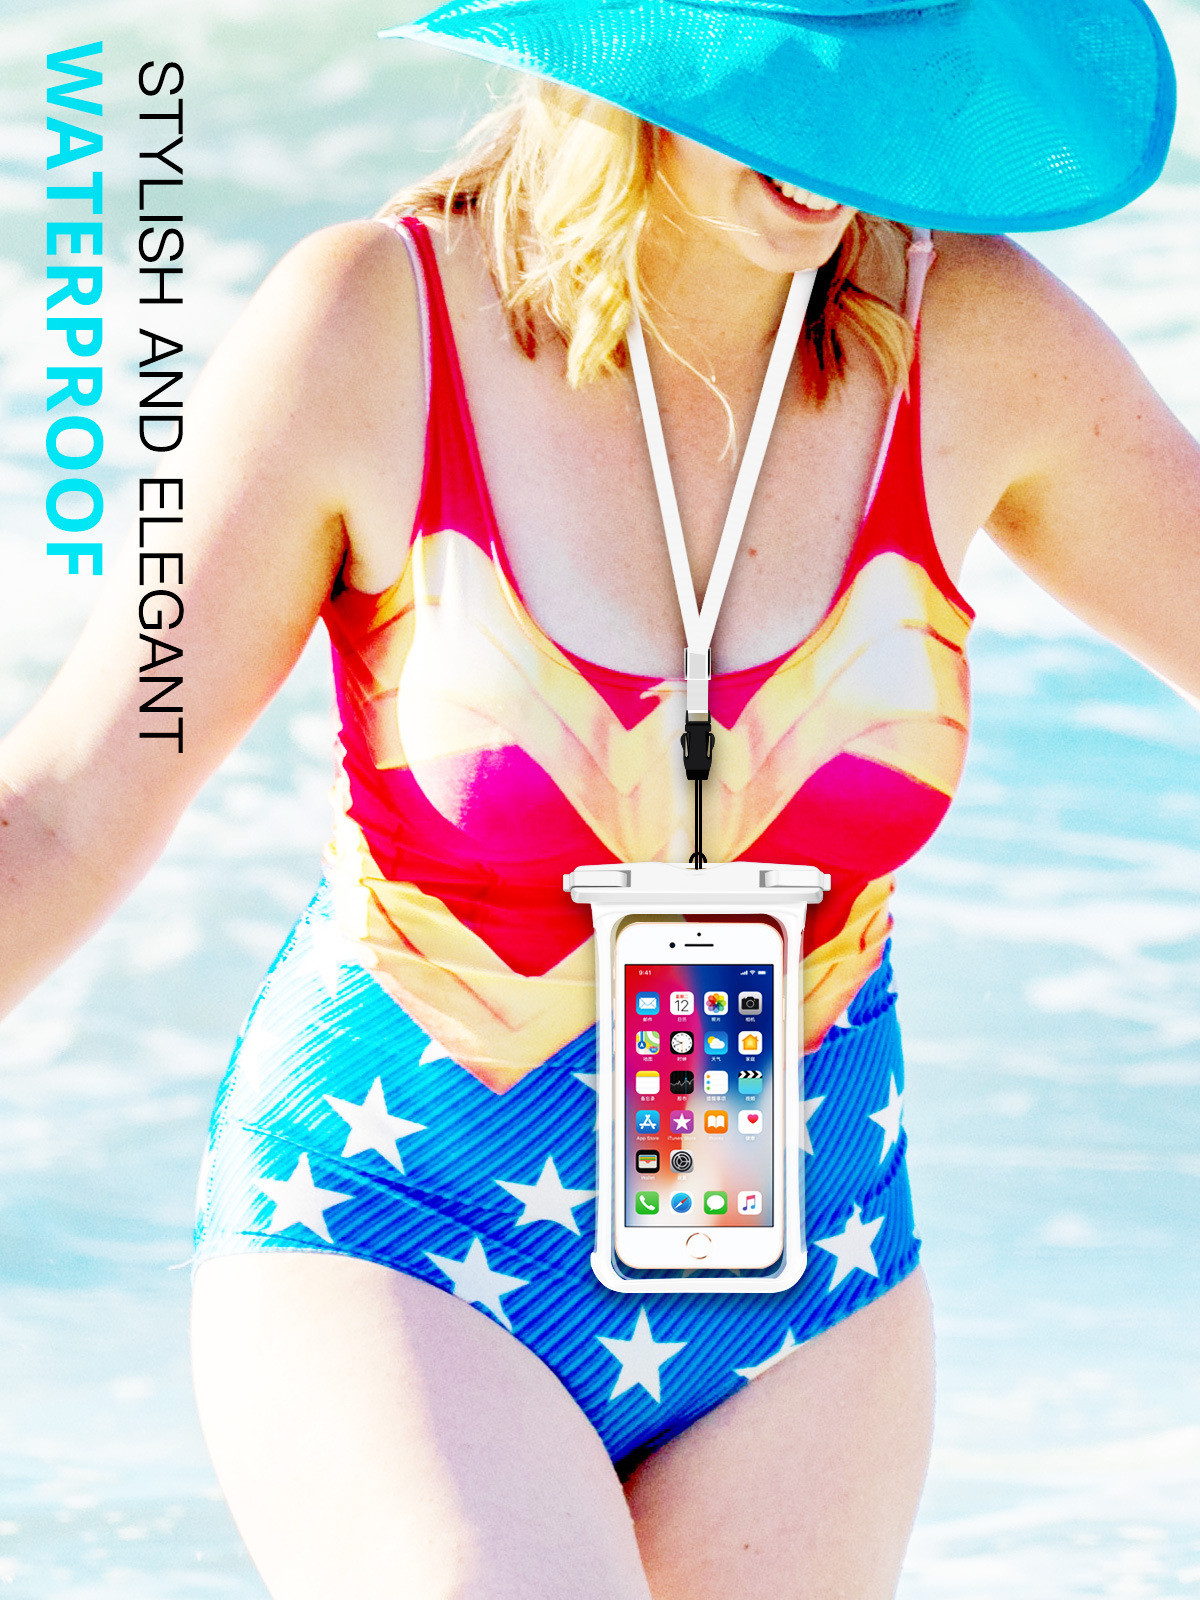 H4ab832eeb0124721809e7d7b617f3839P - Full View Waterproof Swimming Pouch Case for Phone Underwater Snow Rainforest Transparent Dry Bag Big Mobile Phone Bag Sealed